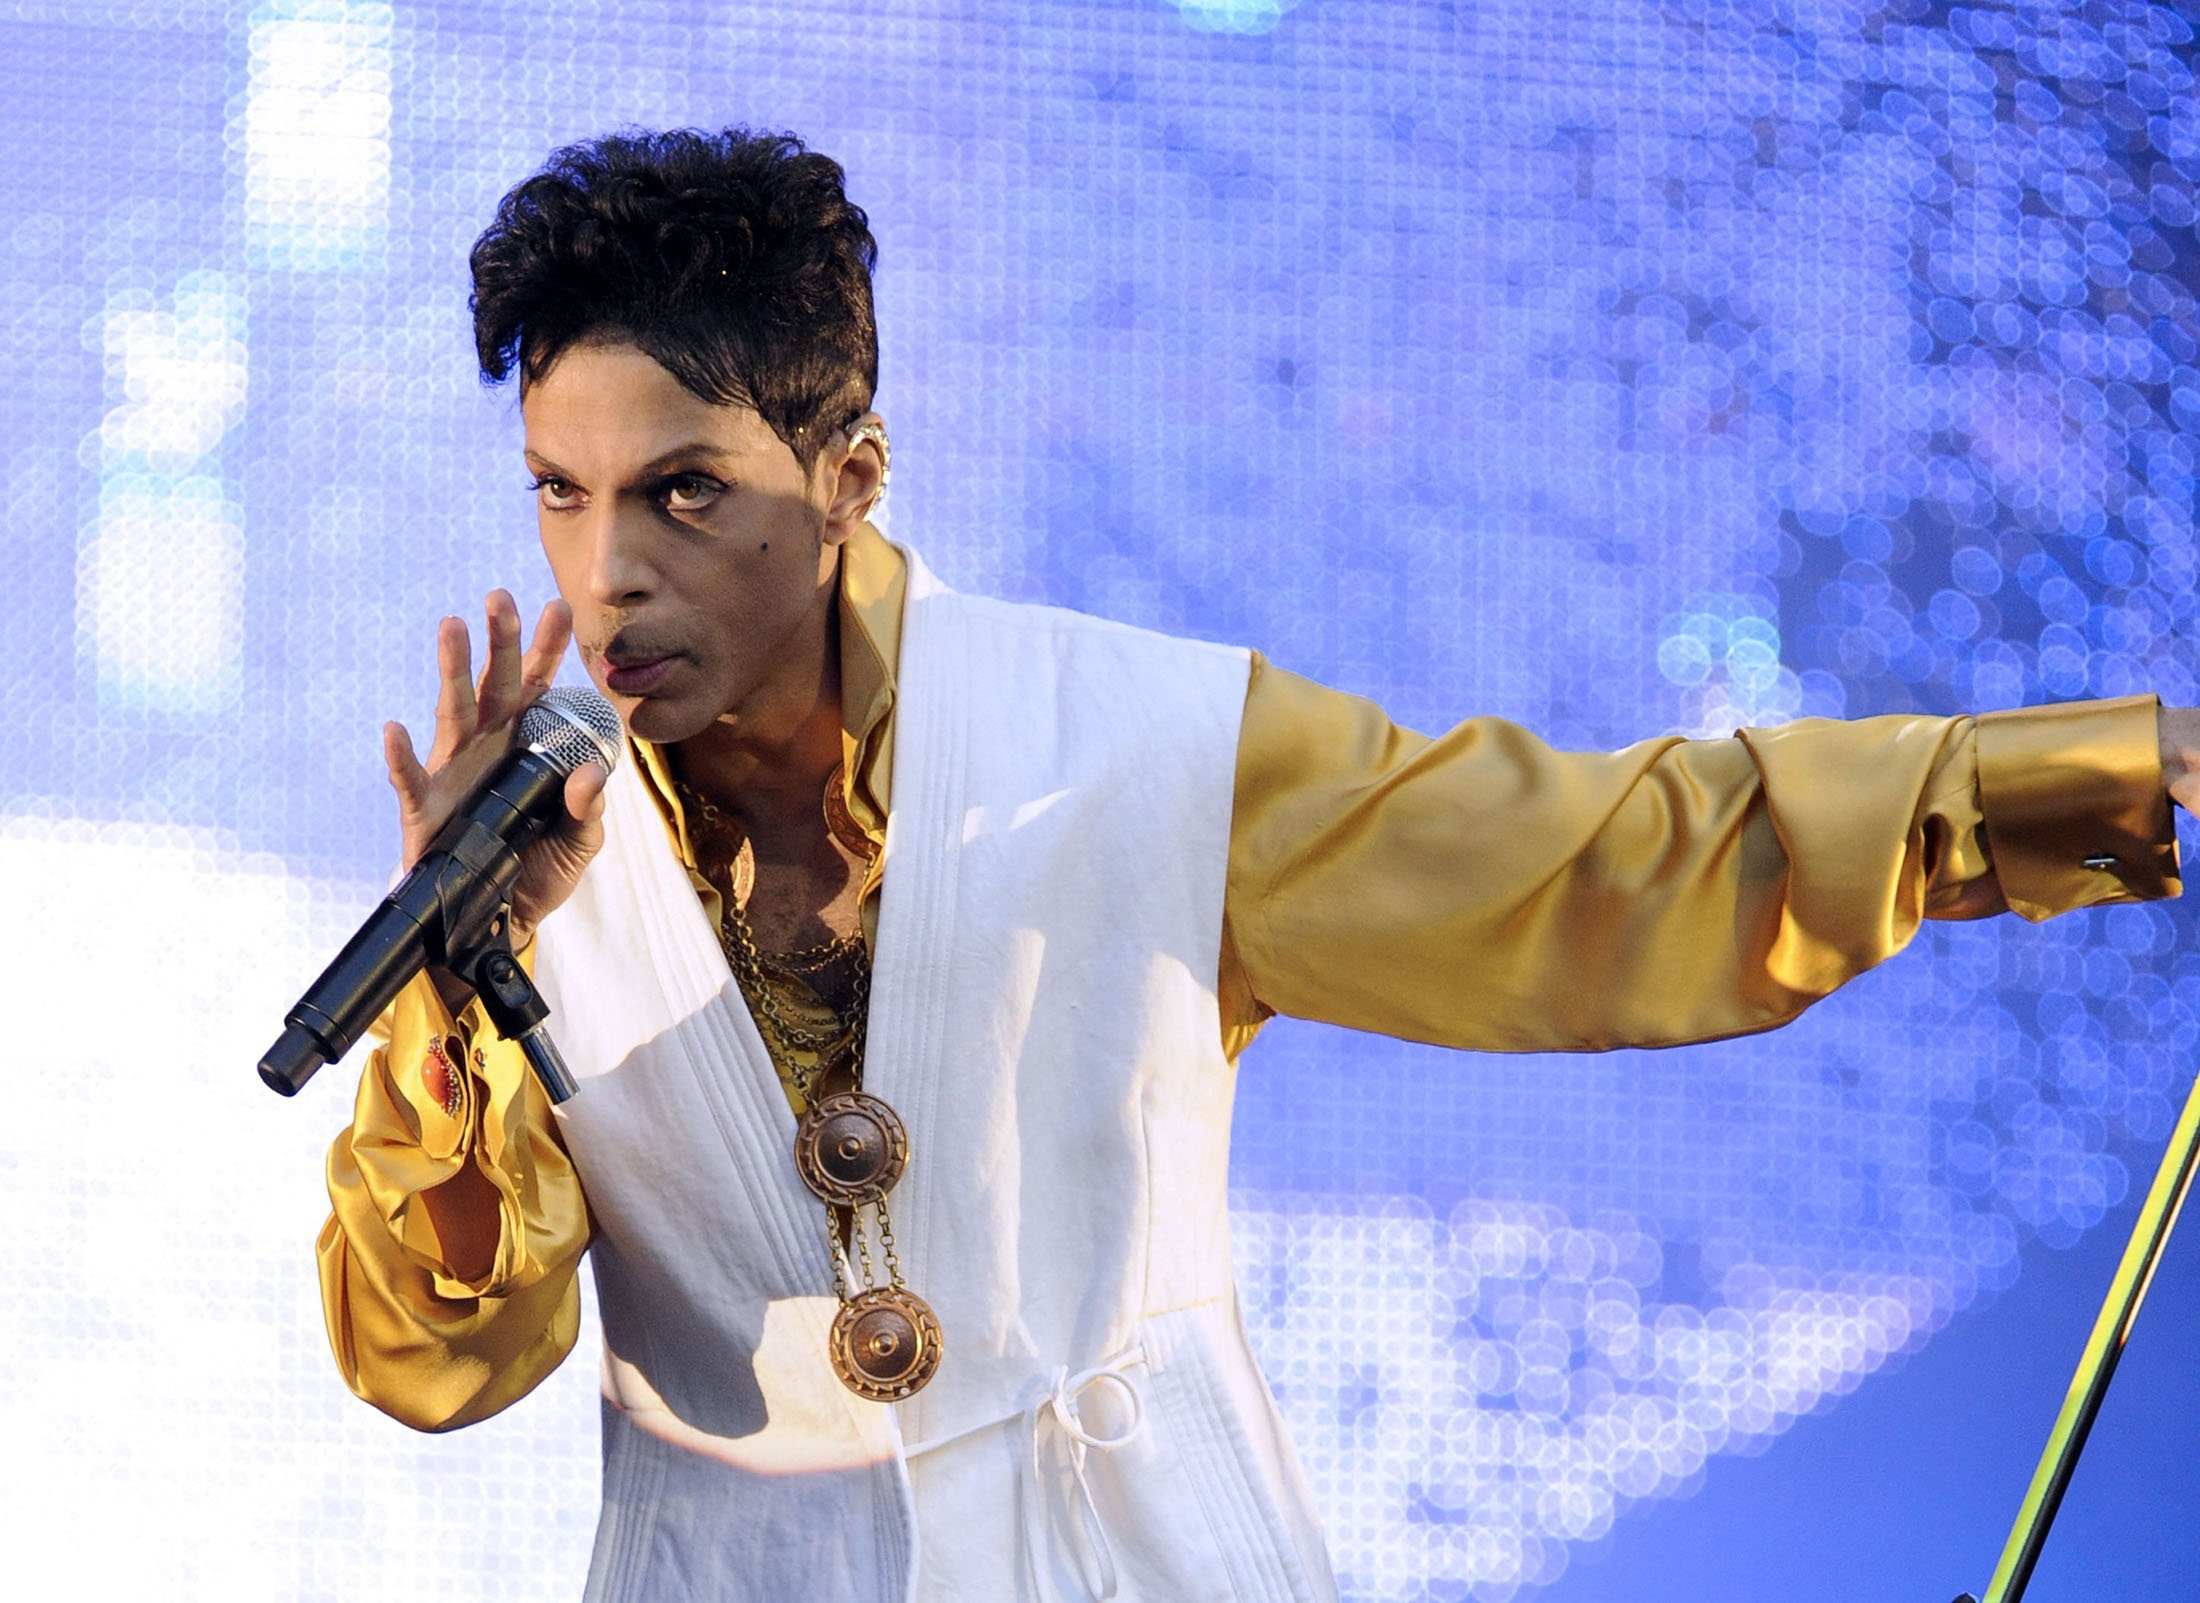 U.S. singer and musician Prince performs on stage at the Stade de France in Saint-Denis, outside Paris, France, June 30, 2011. (AFP Photo)